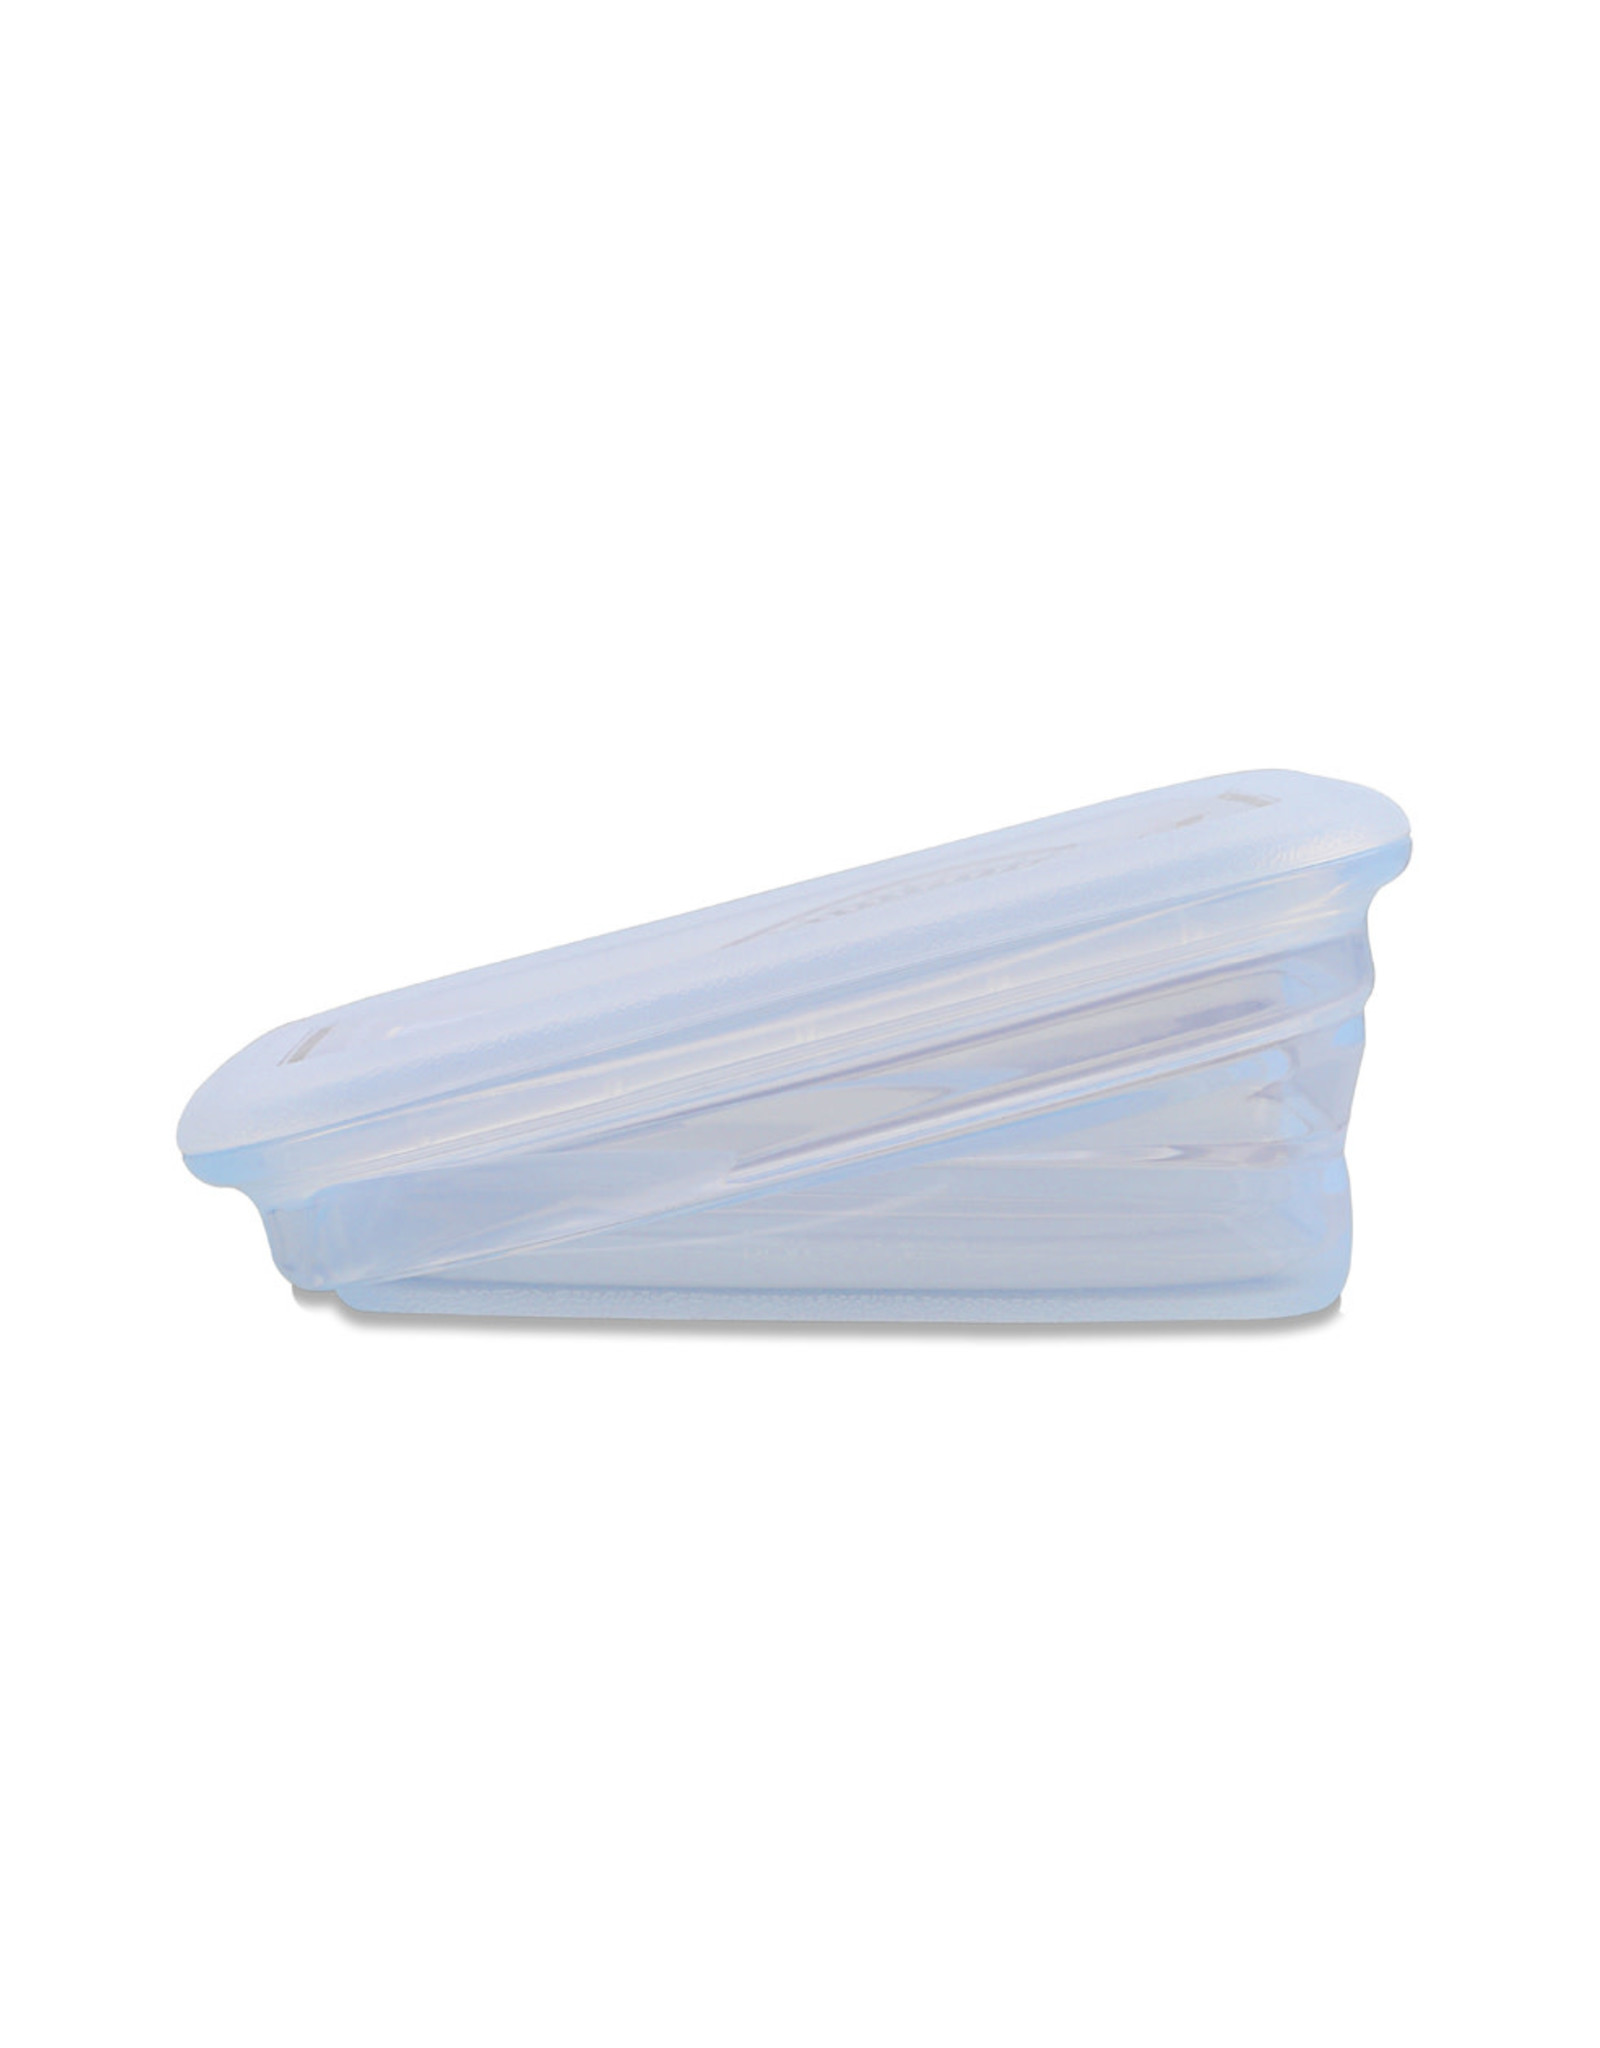 Minimal Minimal Silicone Container Collapsible 860mL  Clear